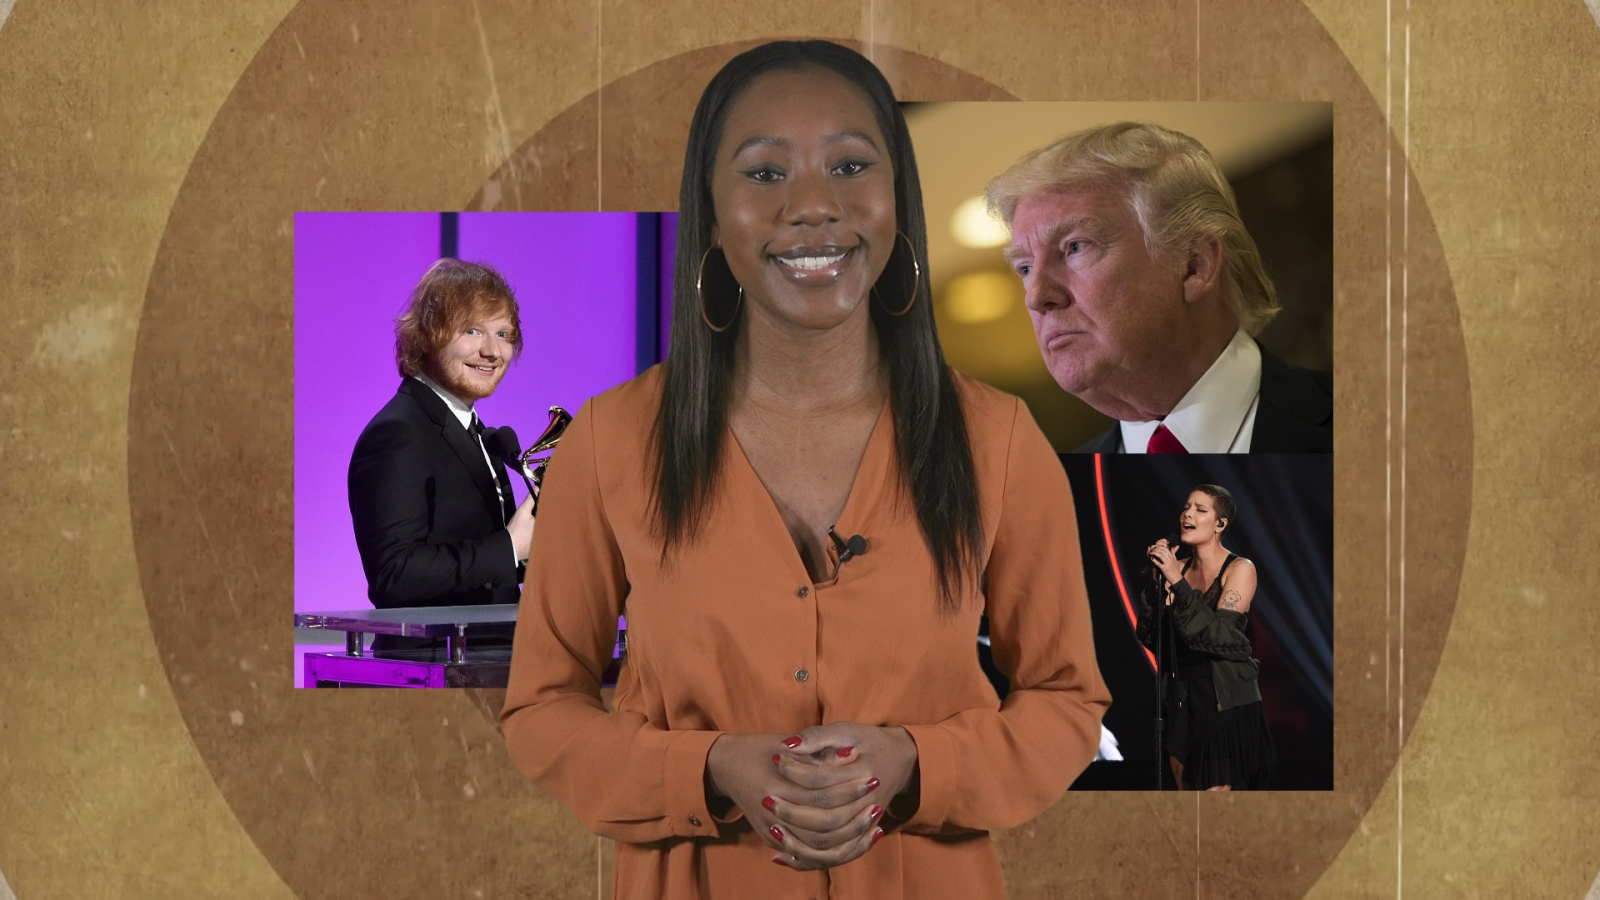 Music Minute: Ed Sheeran makes history, Trump inauguration line-up, 50 Shades Darker soundtrack